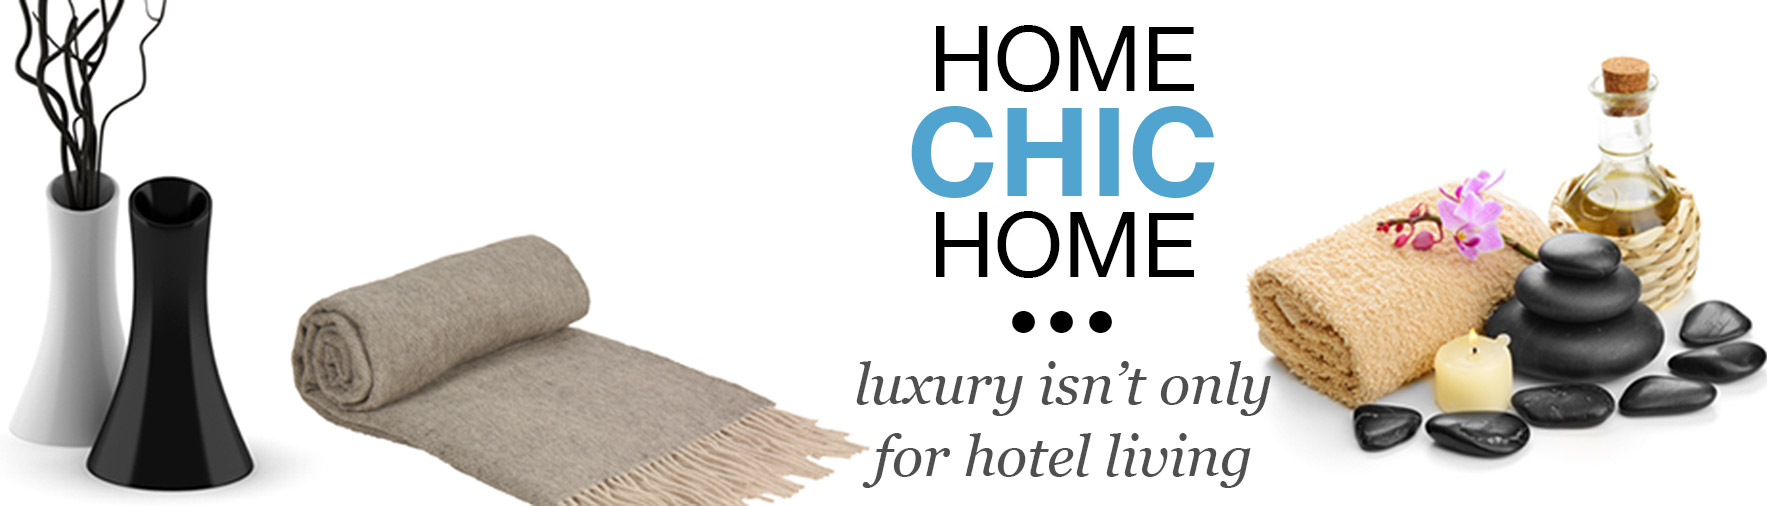 Home Chic Home - luxury isn't only for hotel living